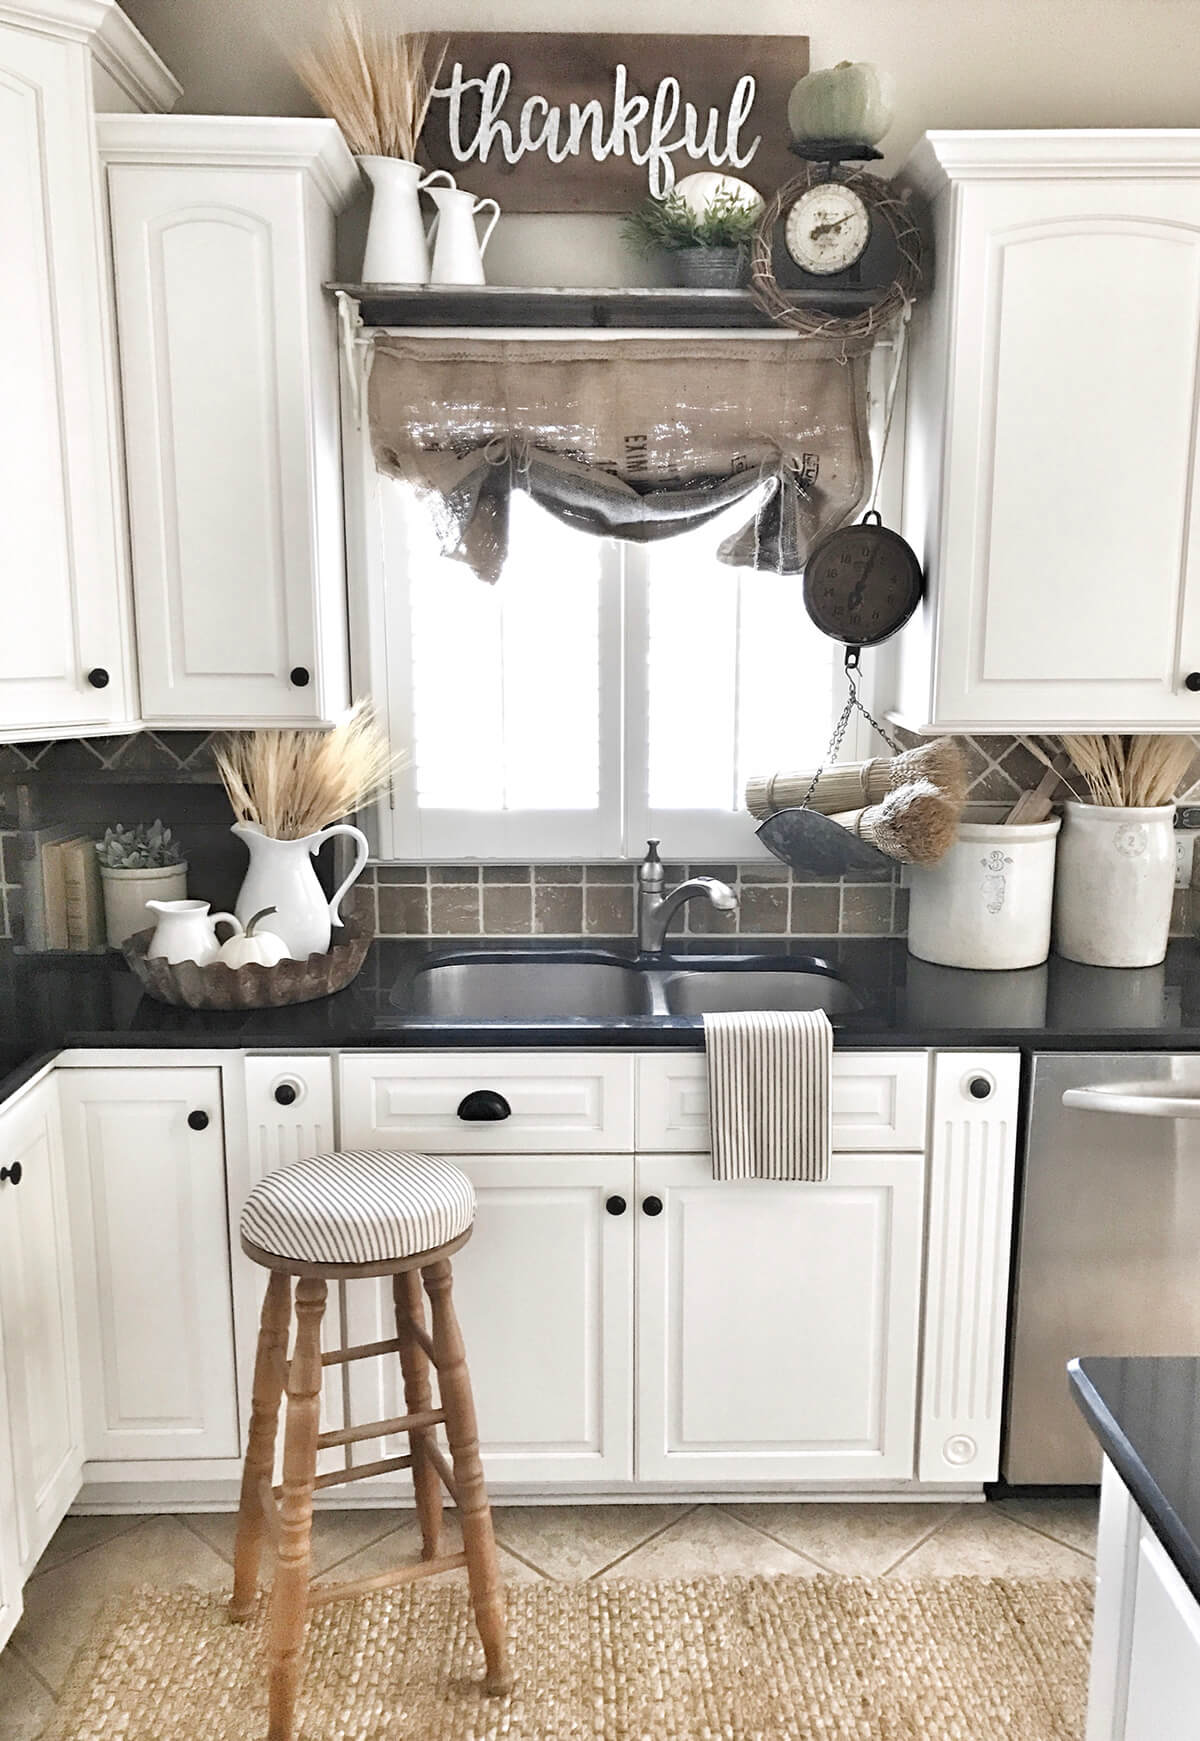 35 Best Farmhouse Kitchen Cabinet Ideas and Designs for 2020 on Farmhouse Kitchen Ideas  id=75431